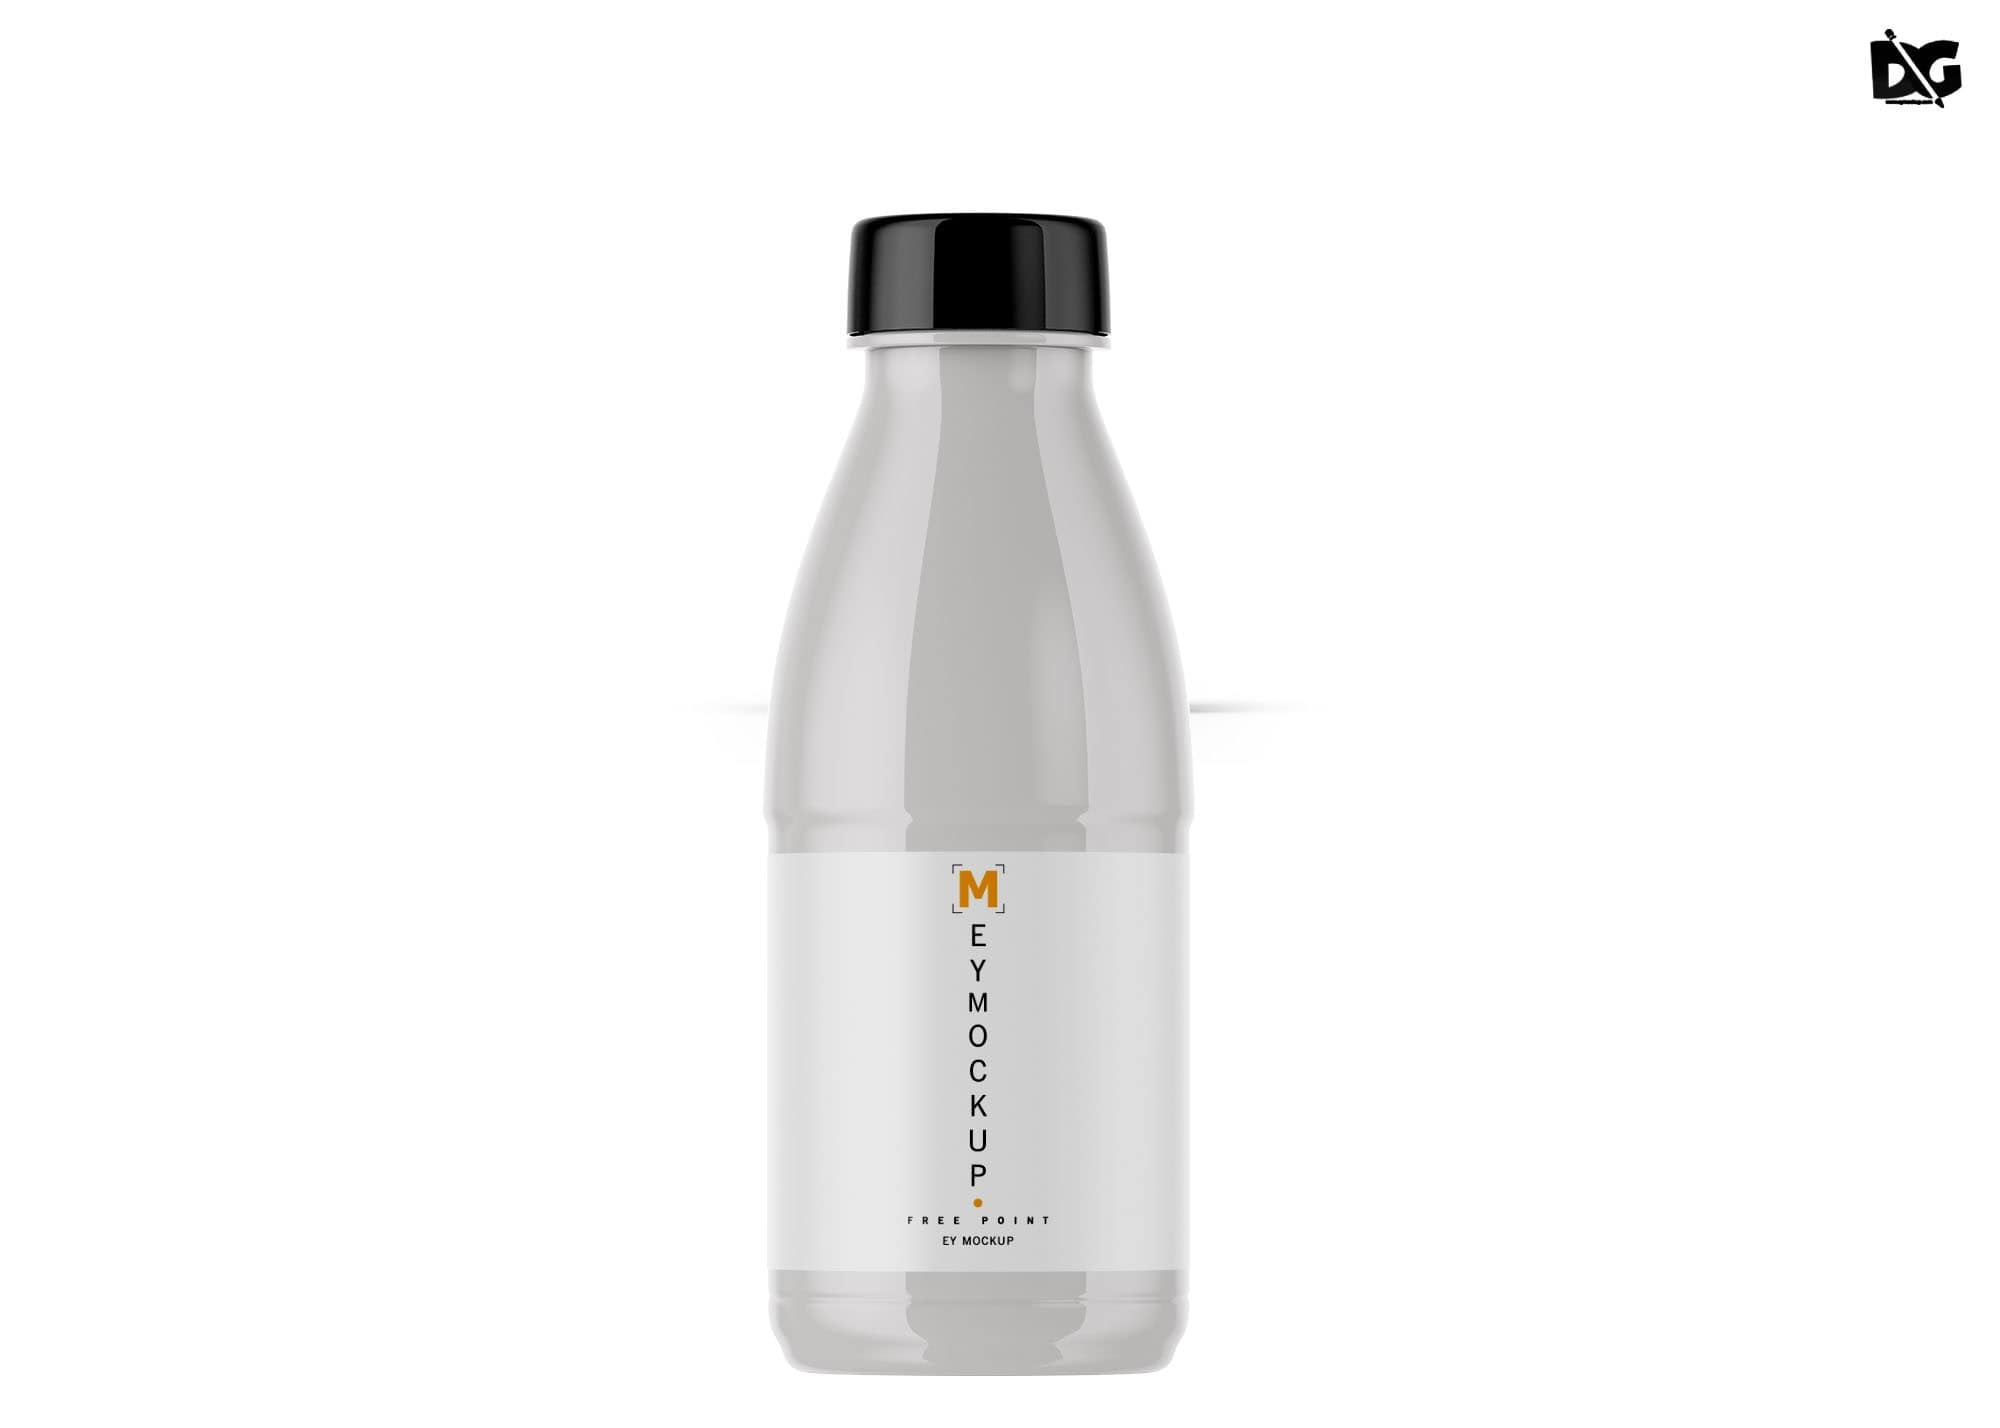 Free Plastic Milk Bottle Mockup